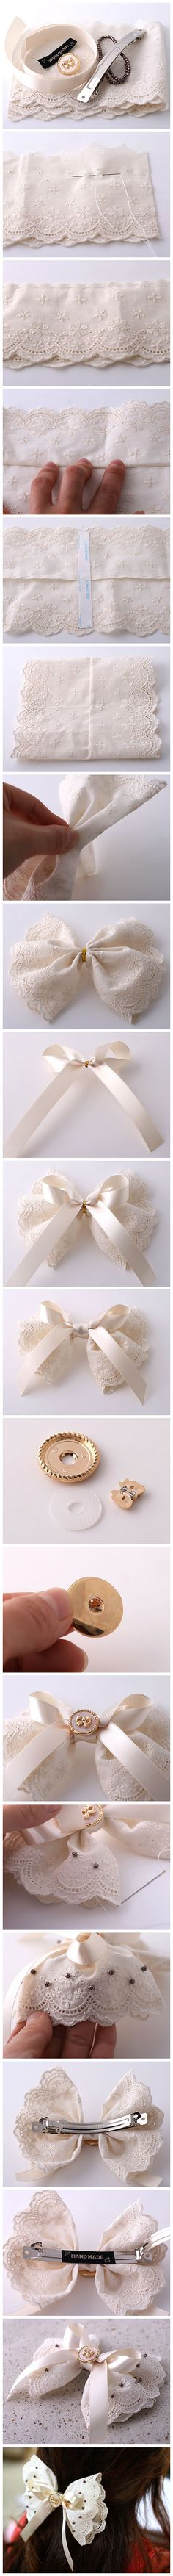 DIY Cute Bow